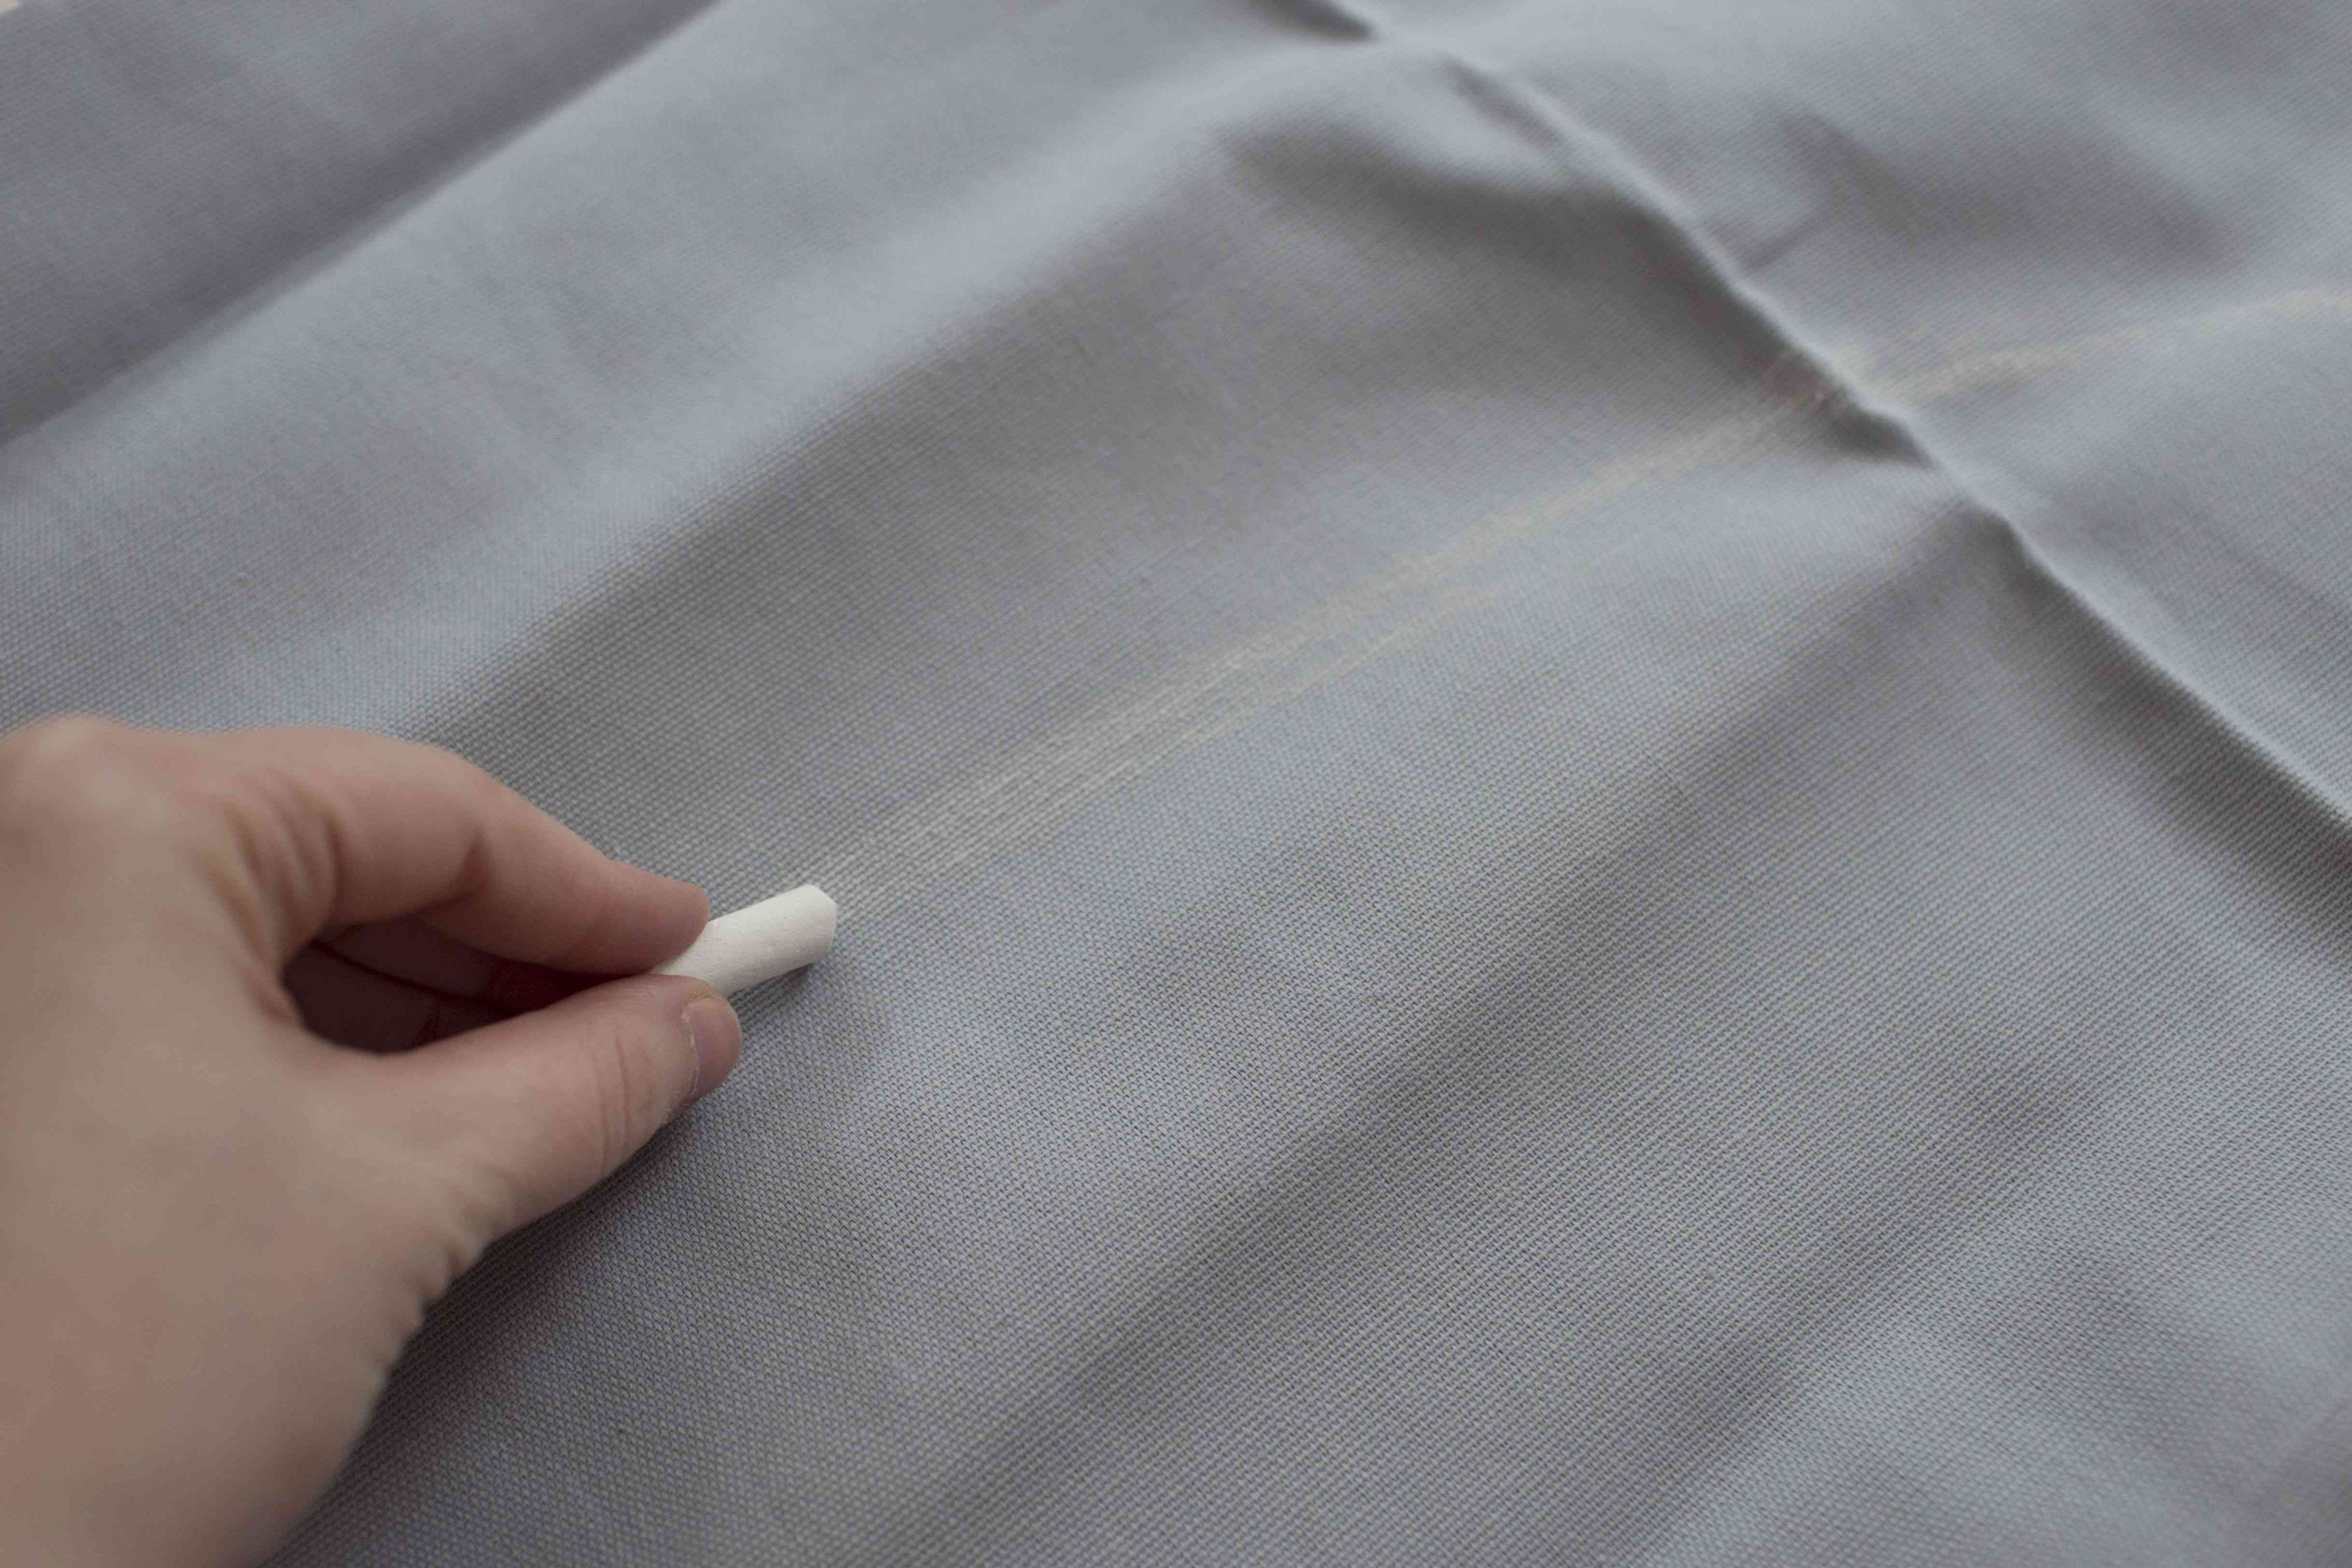 using chalk to measure fabric